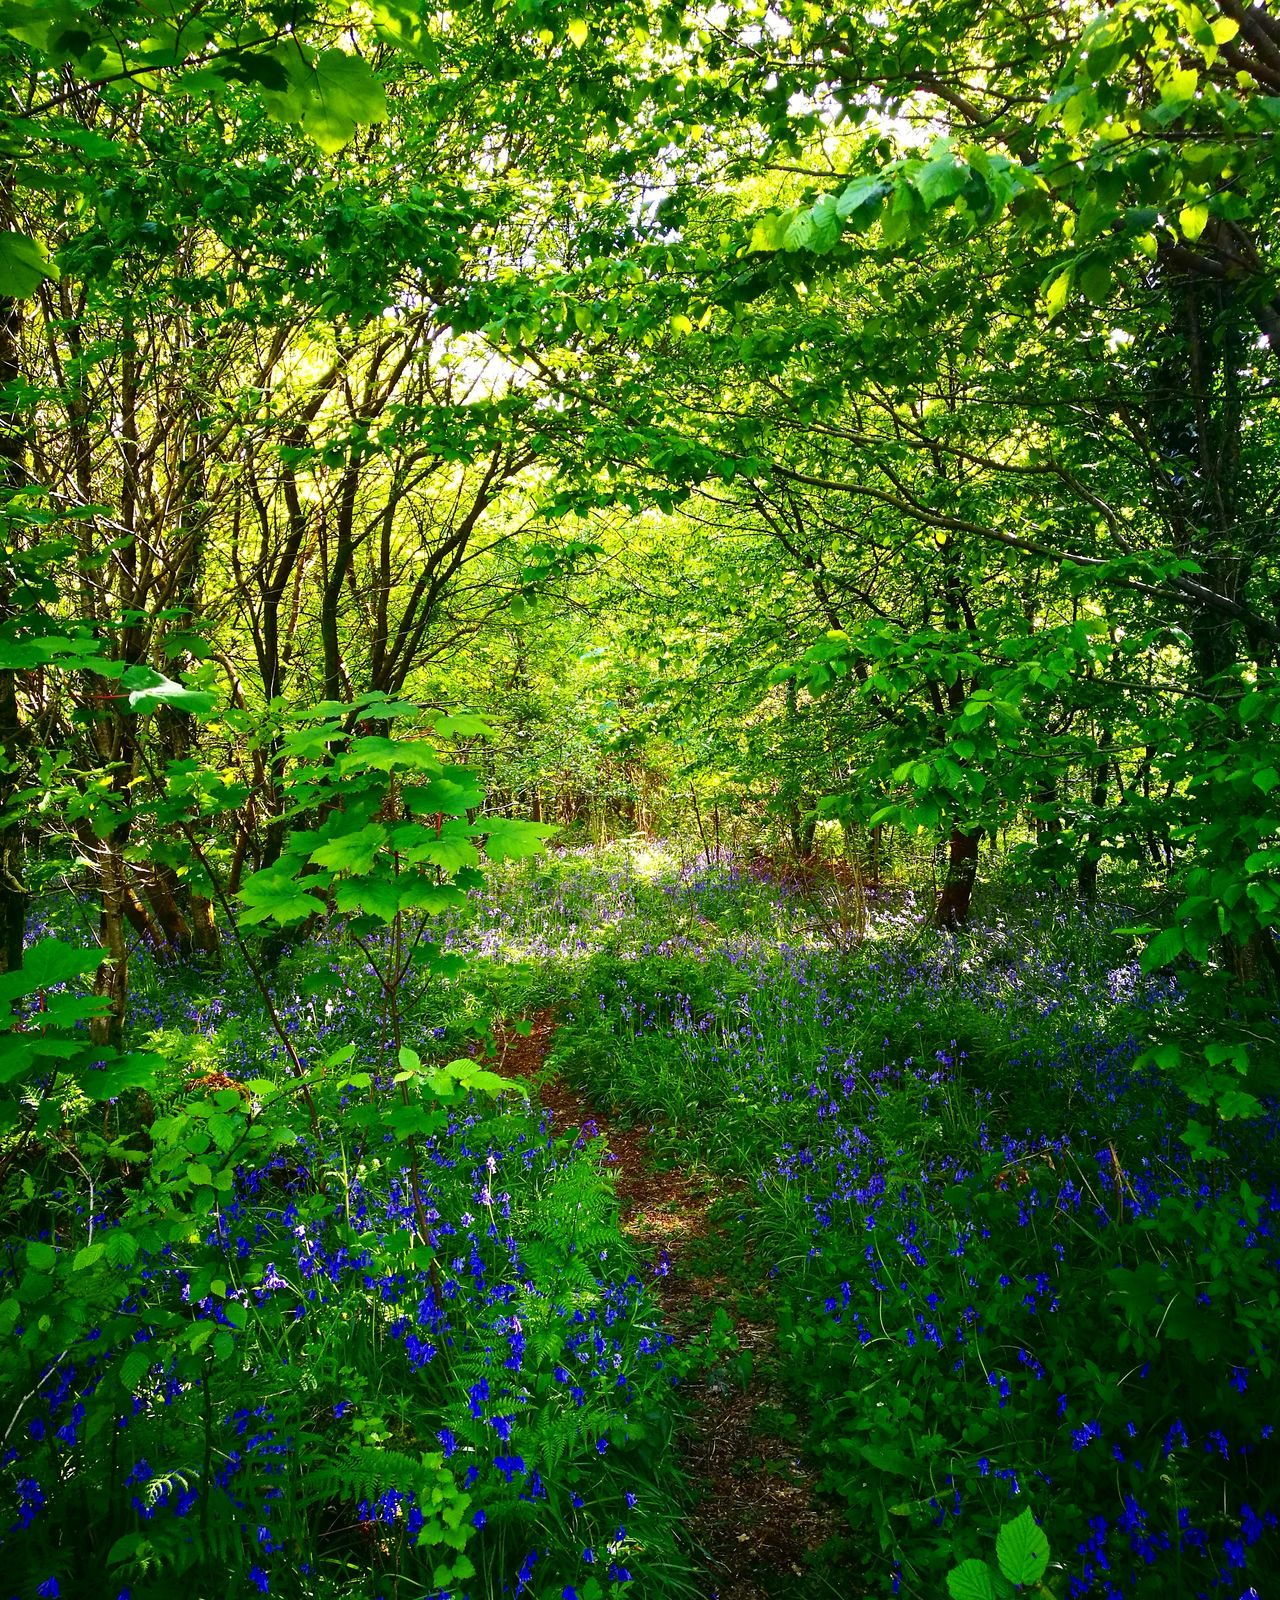 Hensol Forest. Grass No People Day Nature Outdoors Growth Beauty In Nature Tree Bluebells Cowbridge Grass Wales Beauty Forest Forest Path Forestwalk Forest Photography Hensol Forest